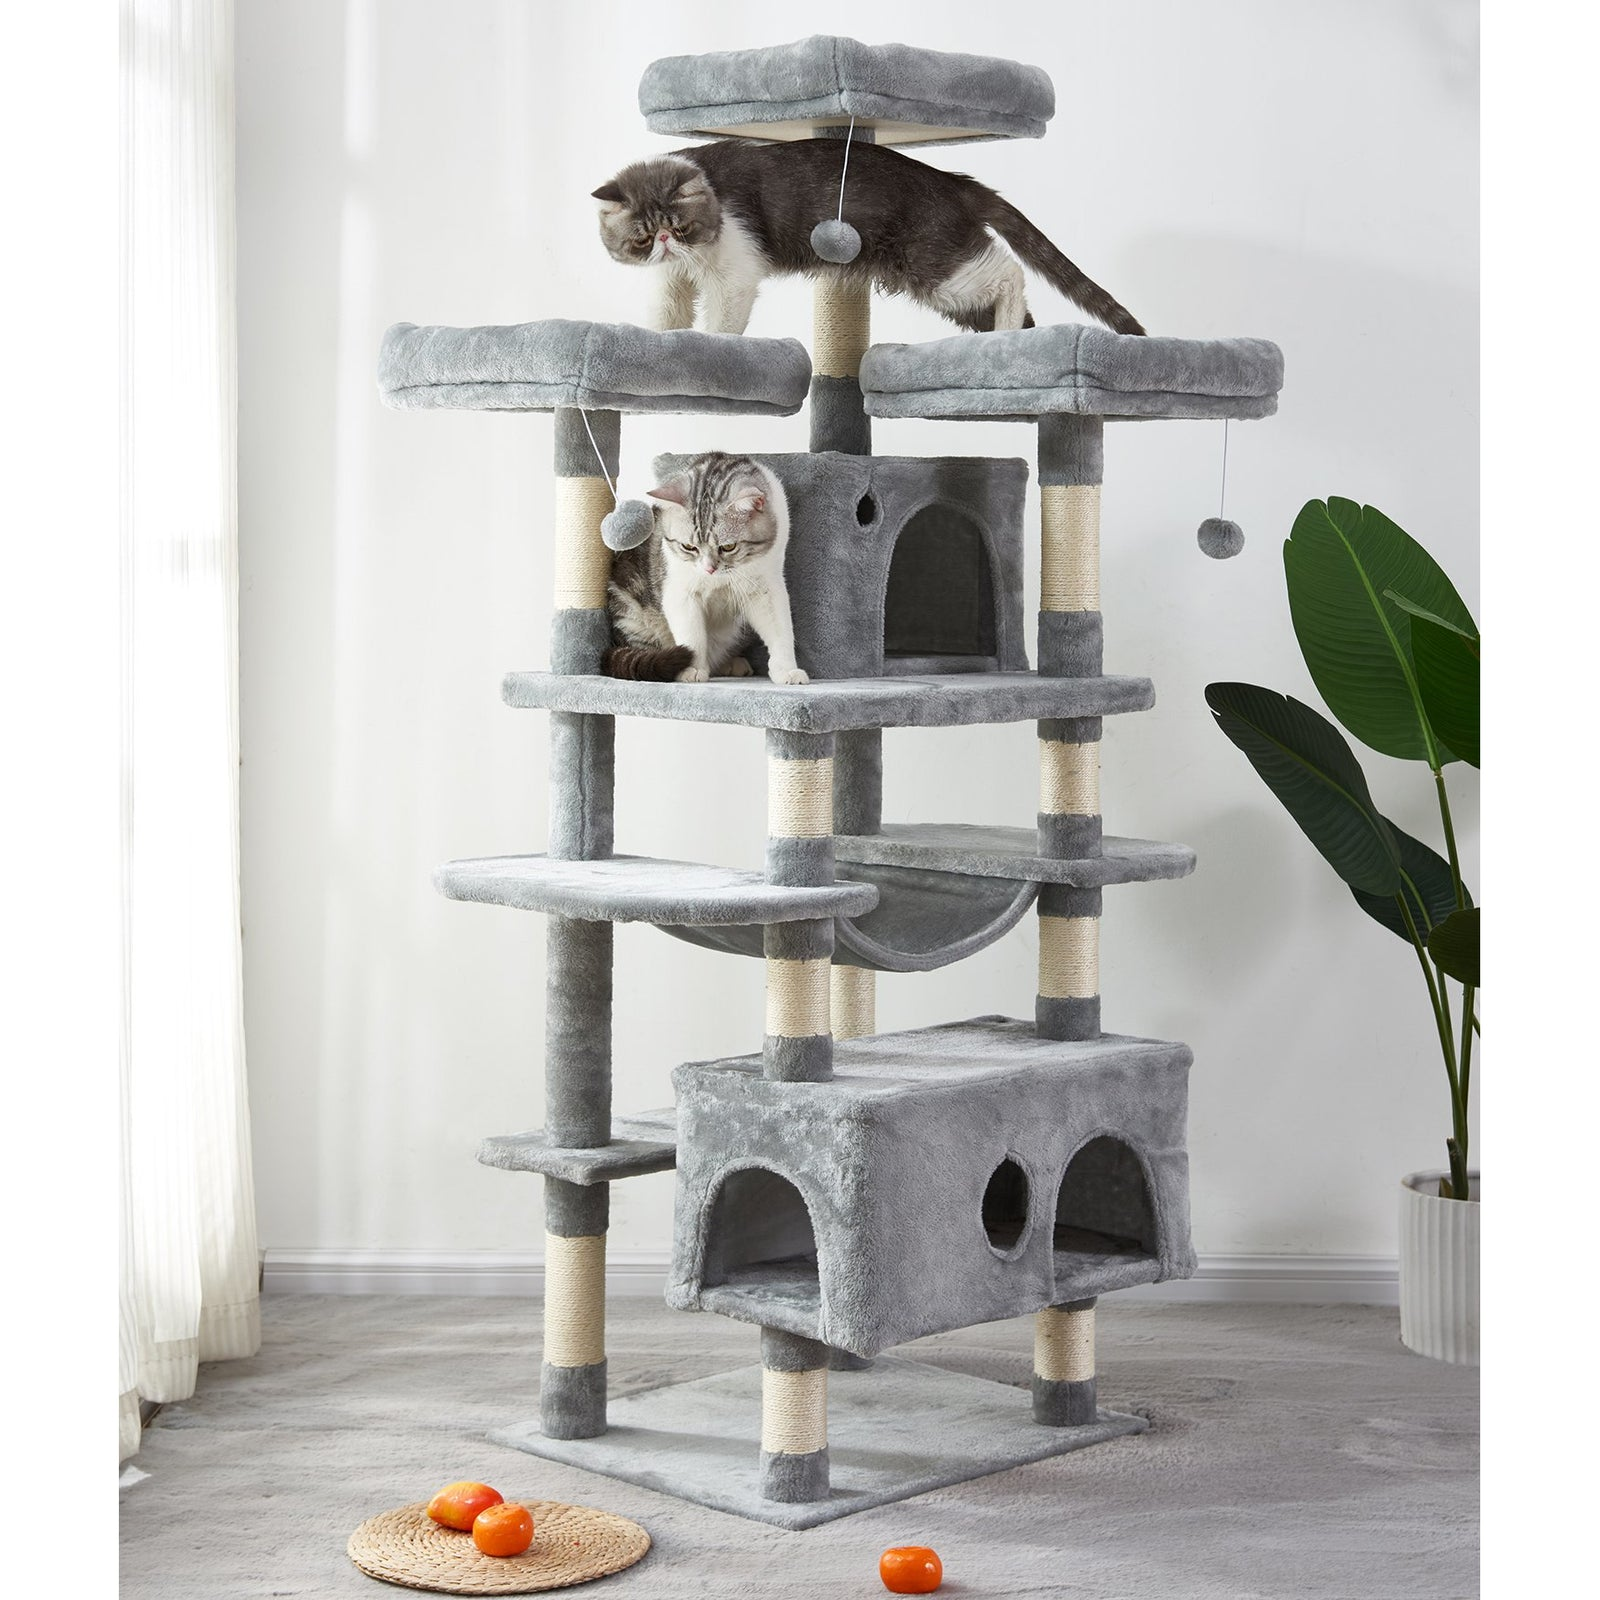 Beige Large Cat Tree Condo with Sisal Scratching Posts Perches Houses Hammock, Cat Tower Furniture Kitty Activity Center Kitten Play House Gray W46918552